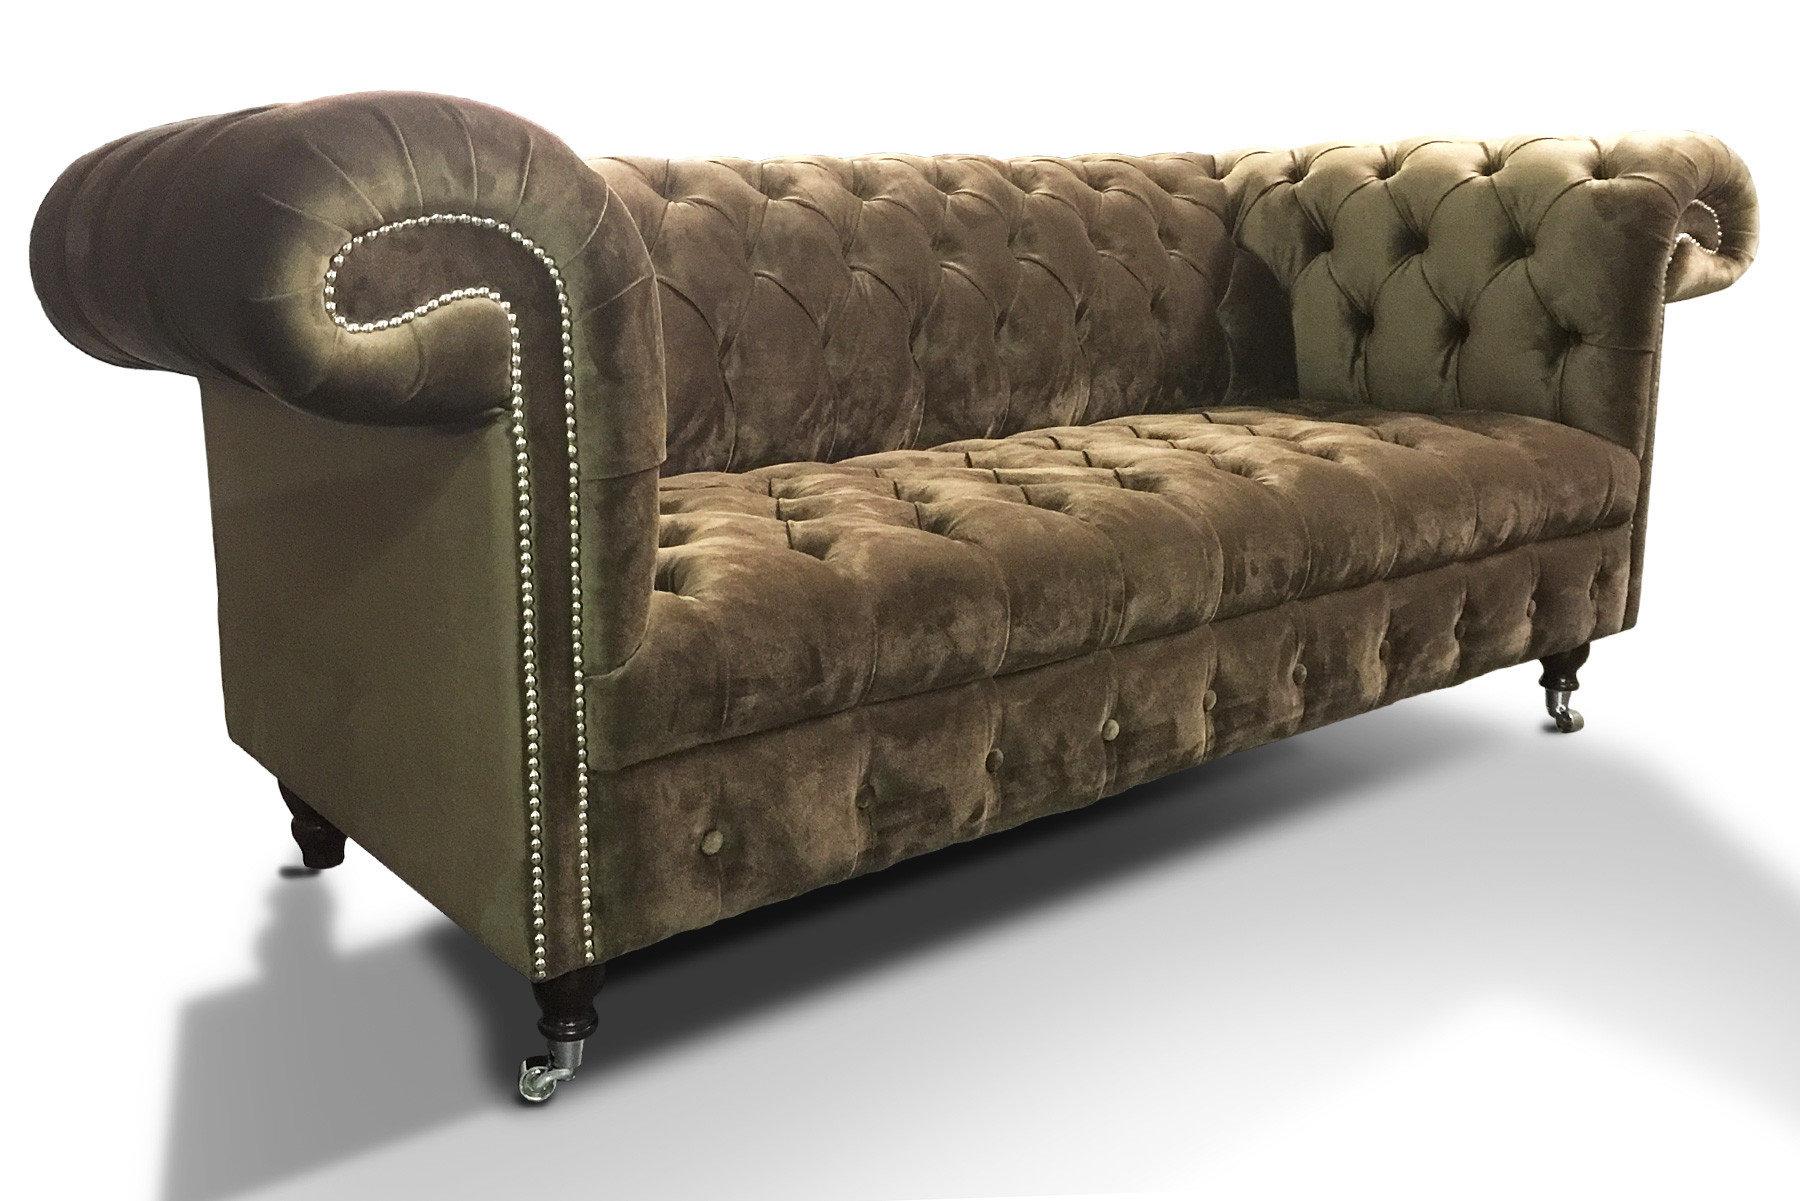 Balmoral Fabric Chesterfield Sofa